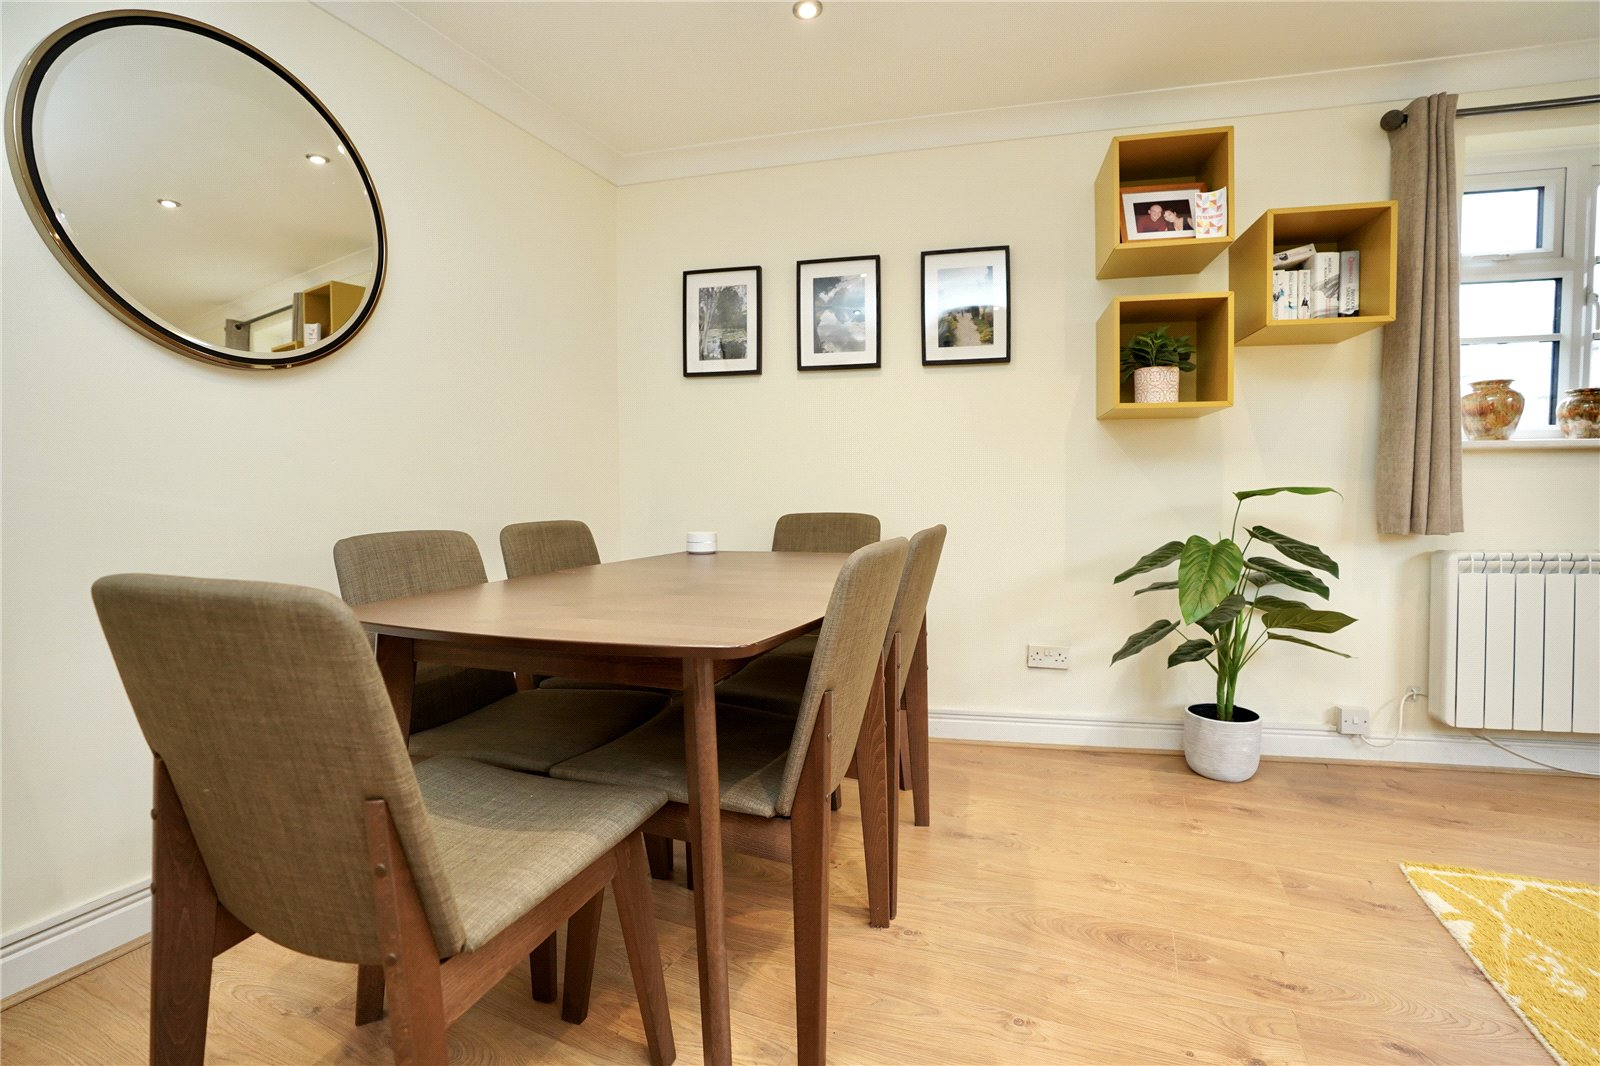 2 bed apartment for sale in Earith, PE28 3PP  - Property Image 6